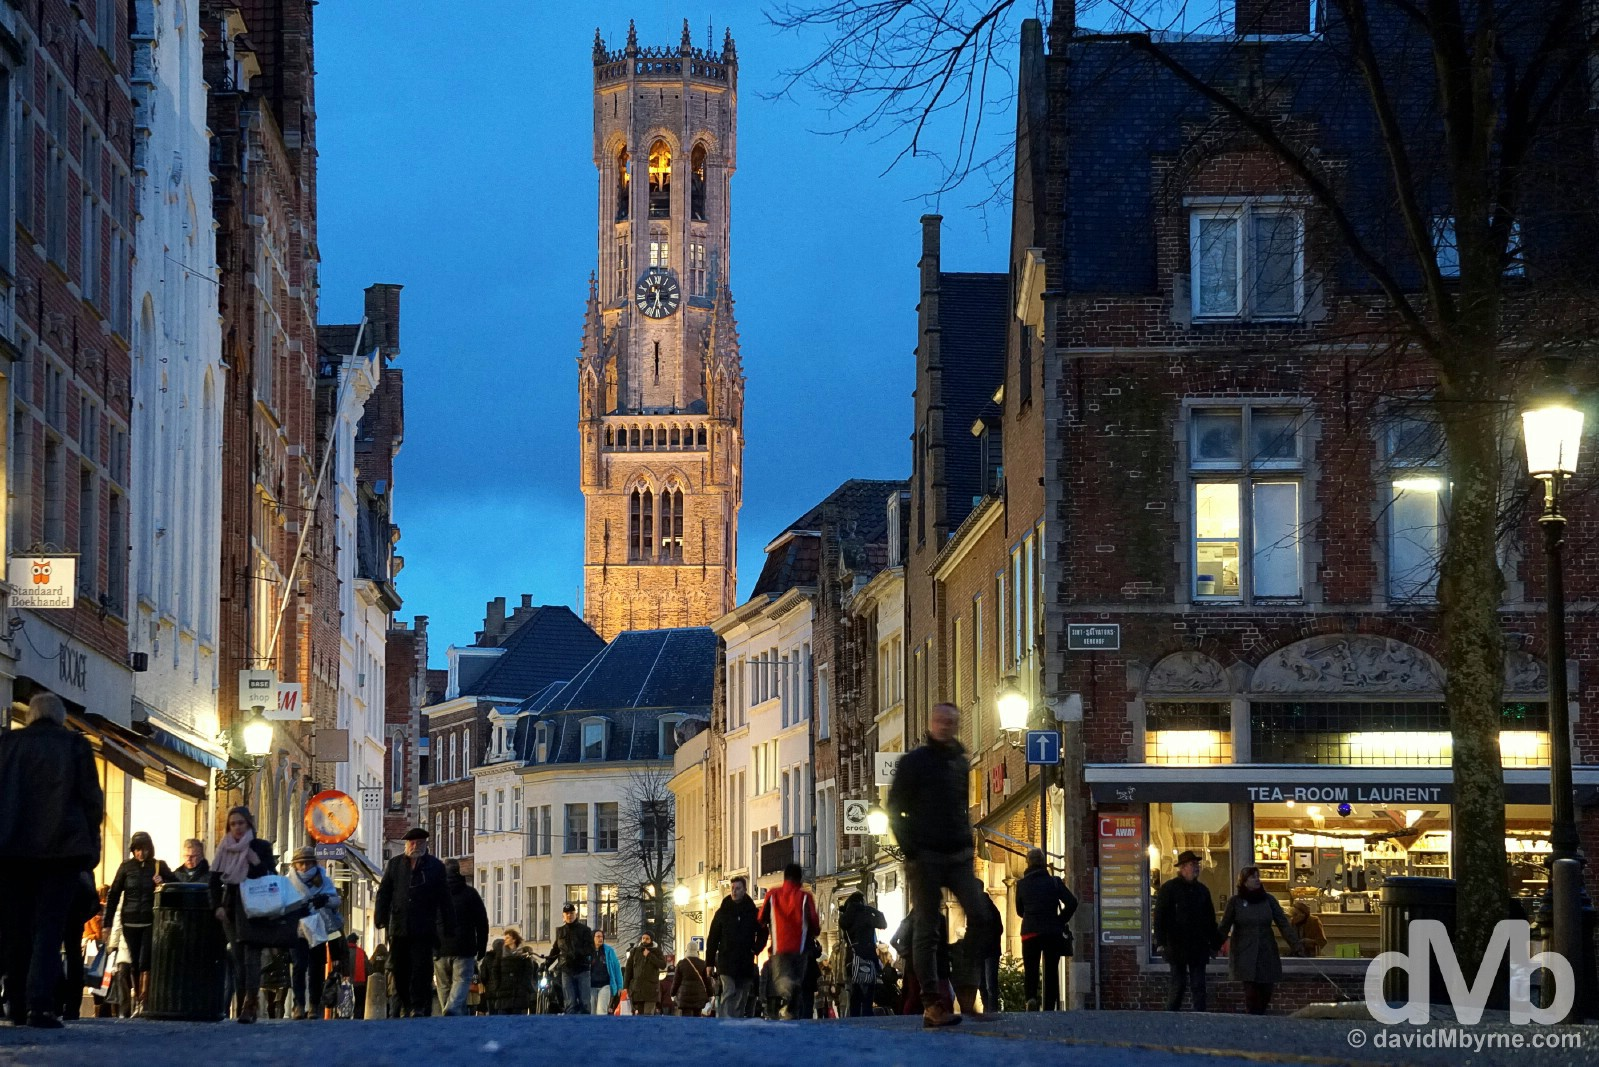 The Belfort at dusk as seen from as seen from Steenstr in Bruges, western Flanders, Belgium. January 16, 2015.